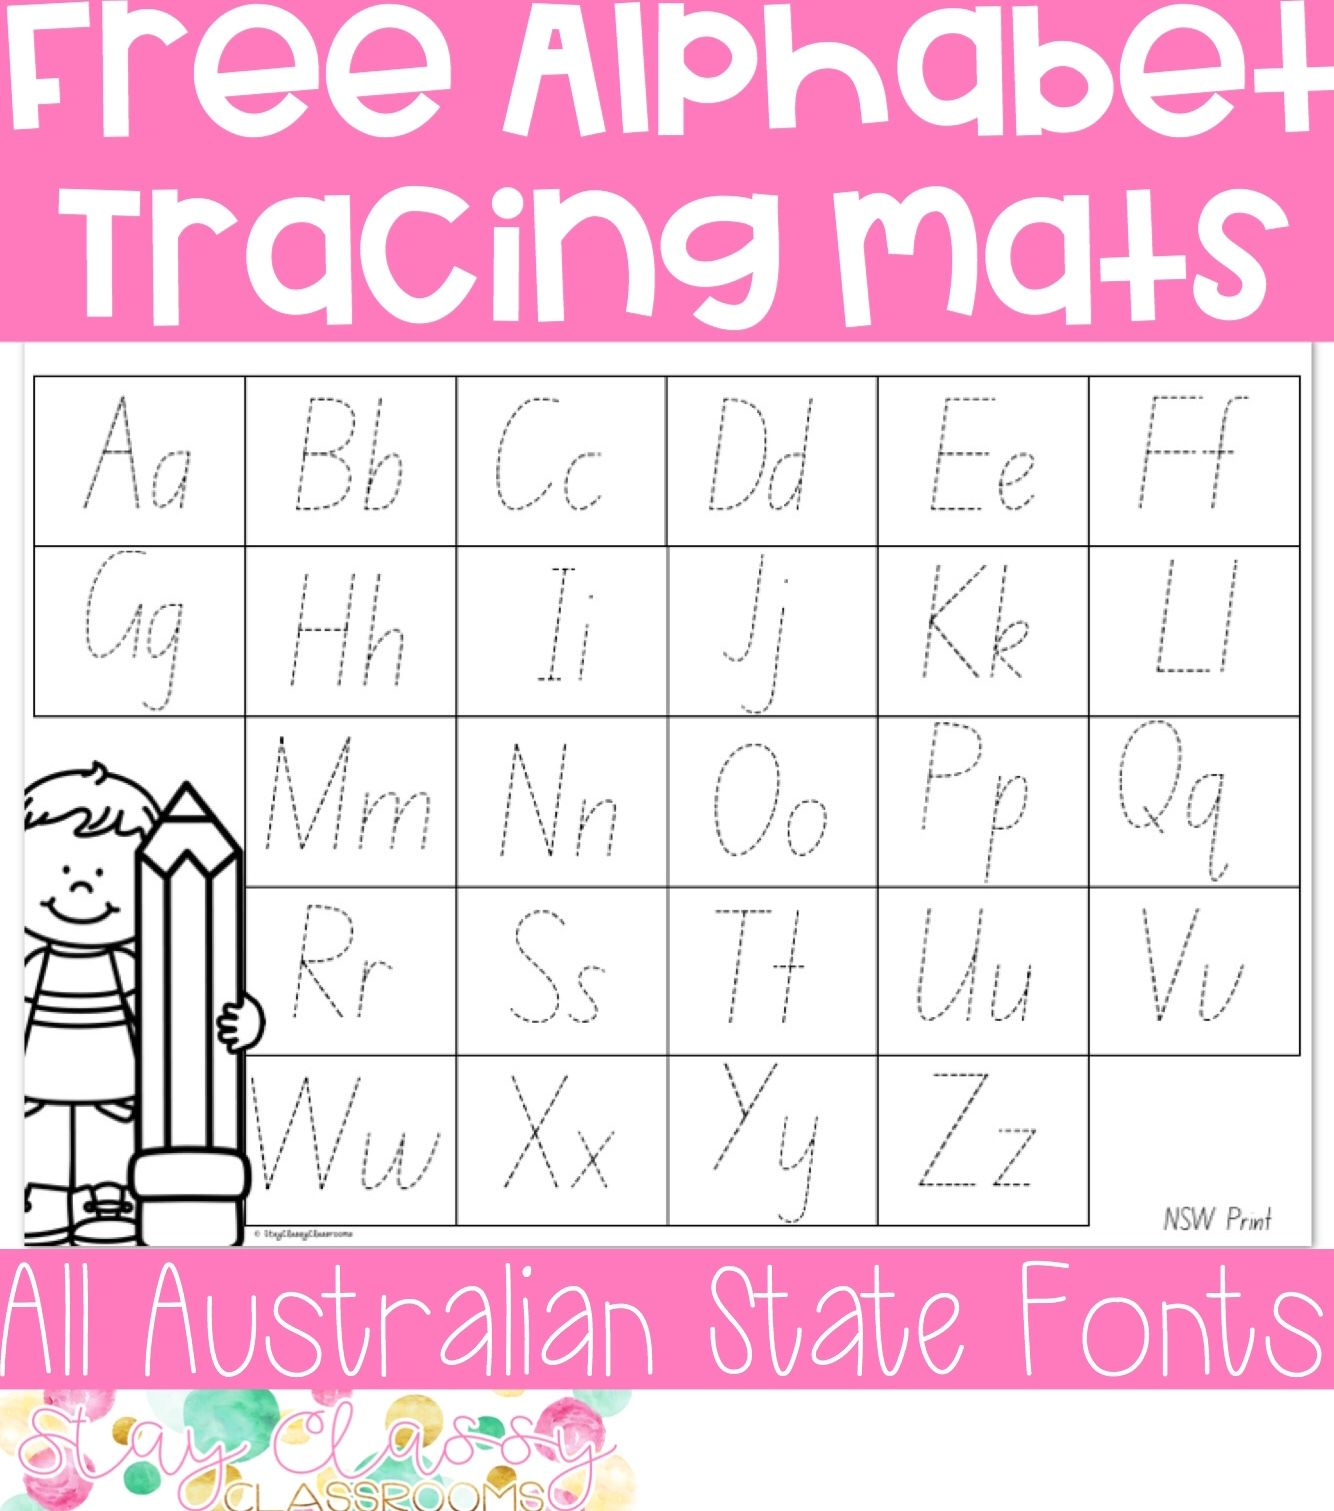 Alphabet Tracing Mats Print And Australian Fonts